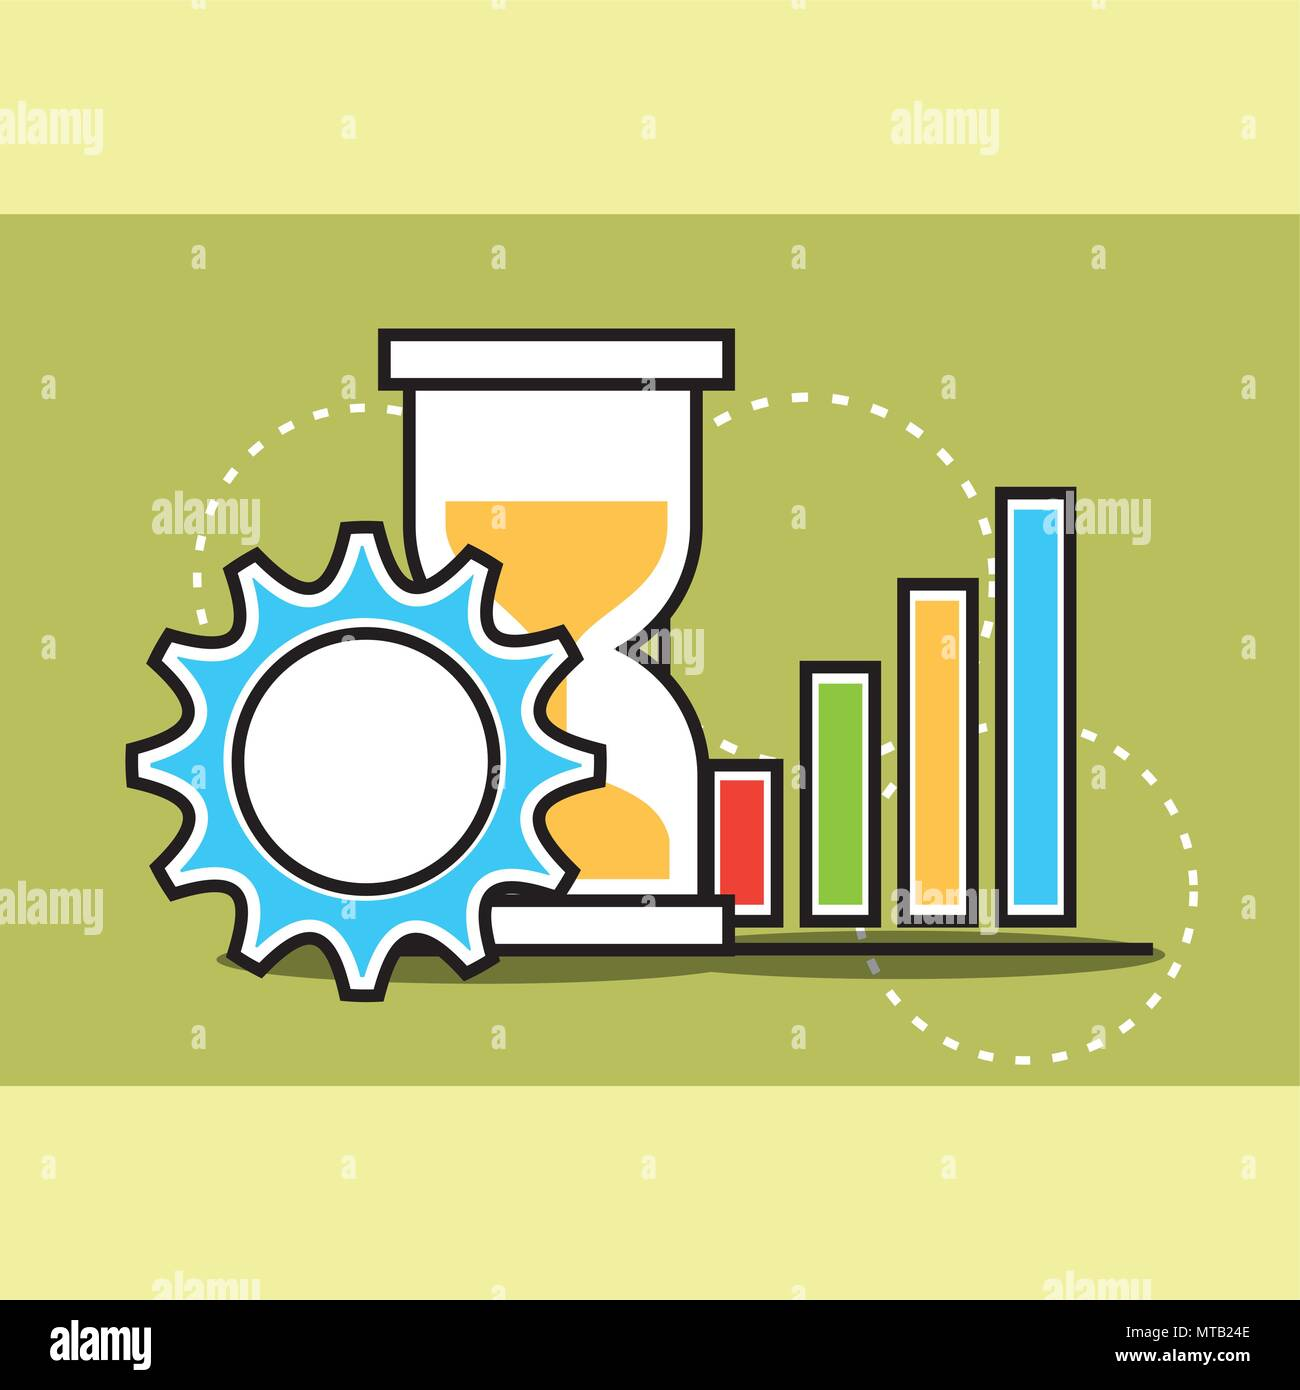 analytics and investment business - Stock Image